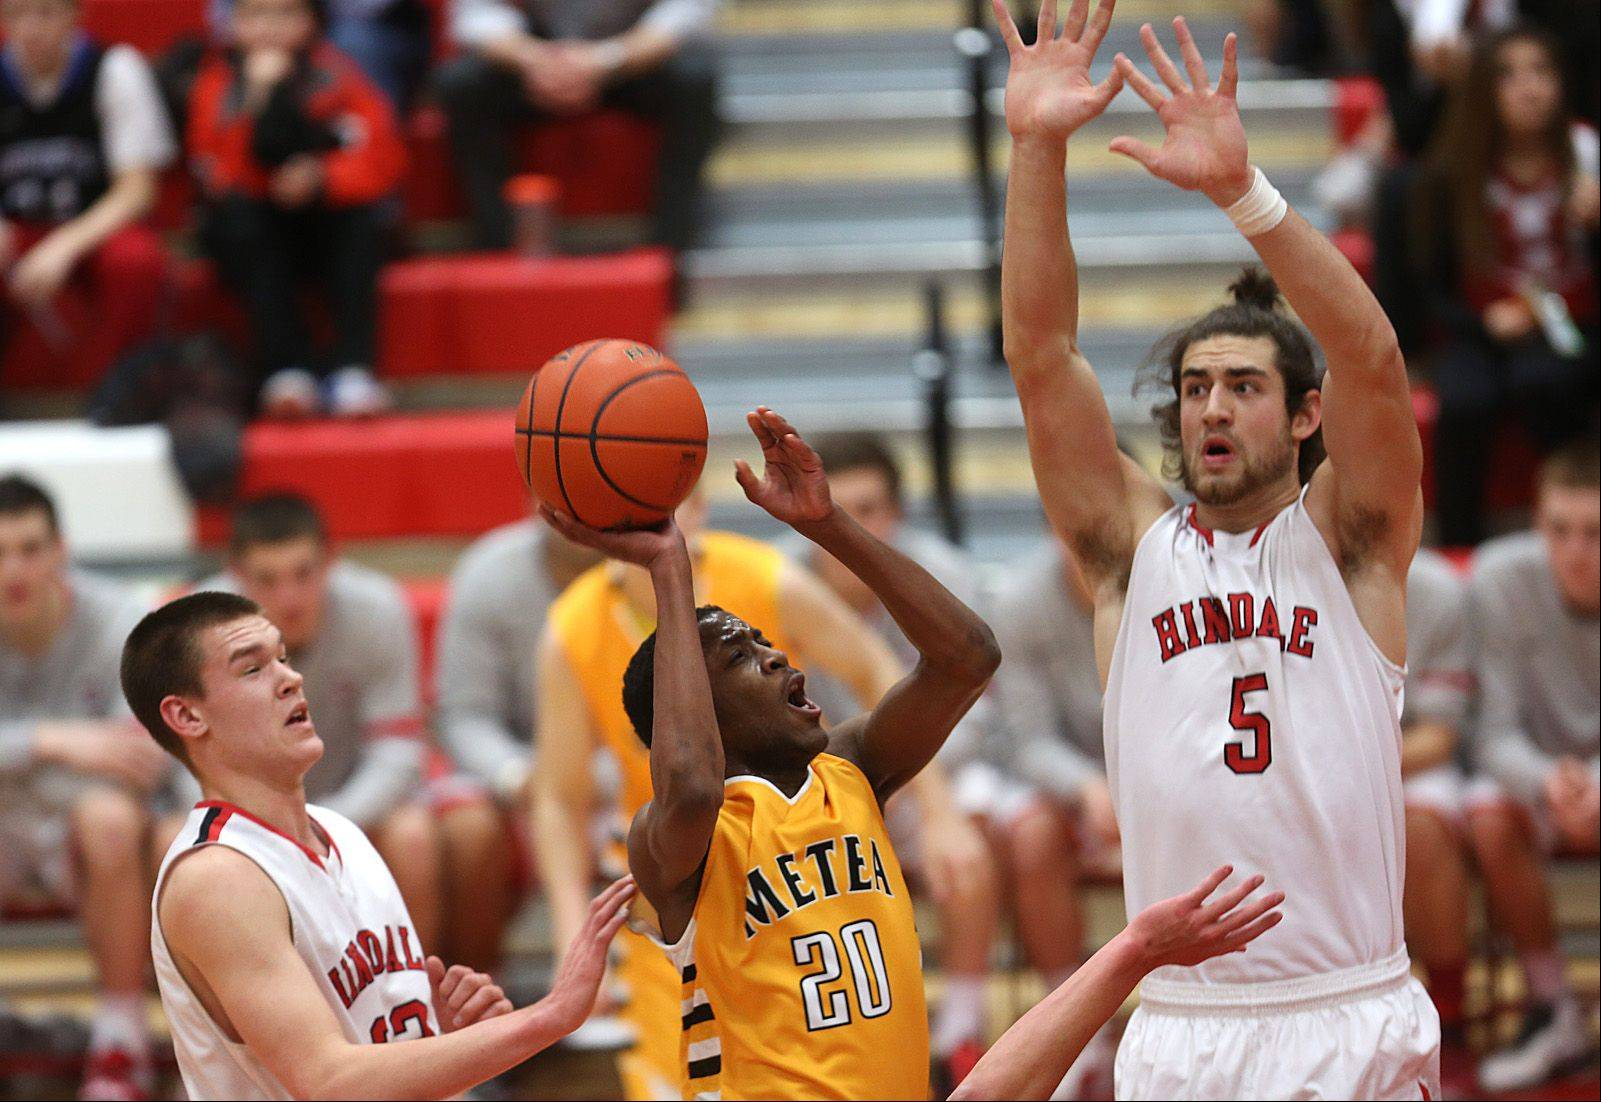 Metea Valley's Marquell Oliver drives between the Hinsdale Central defense of Matt Rafferty, left, and Ian Bunting, right.